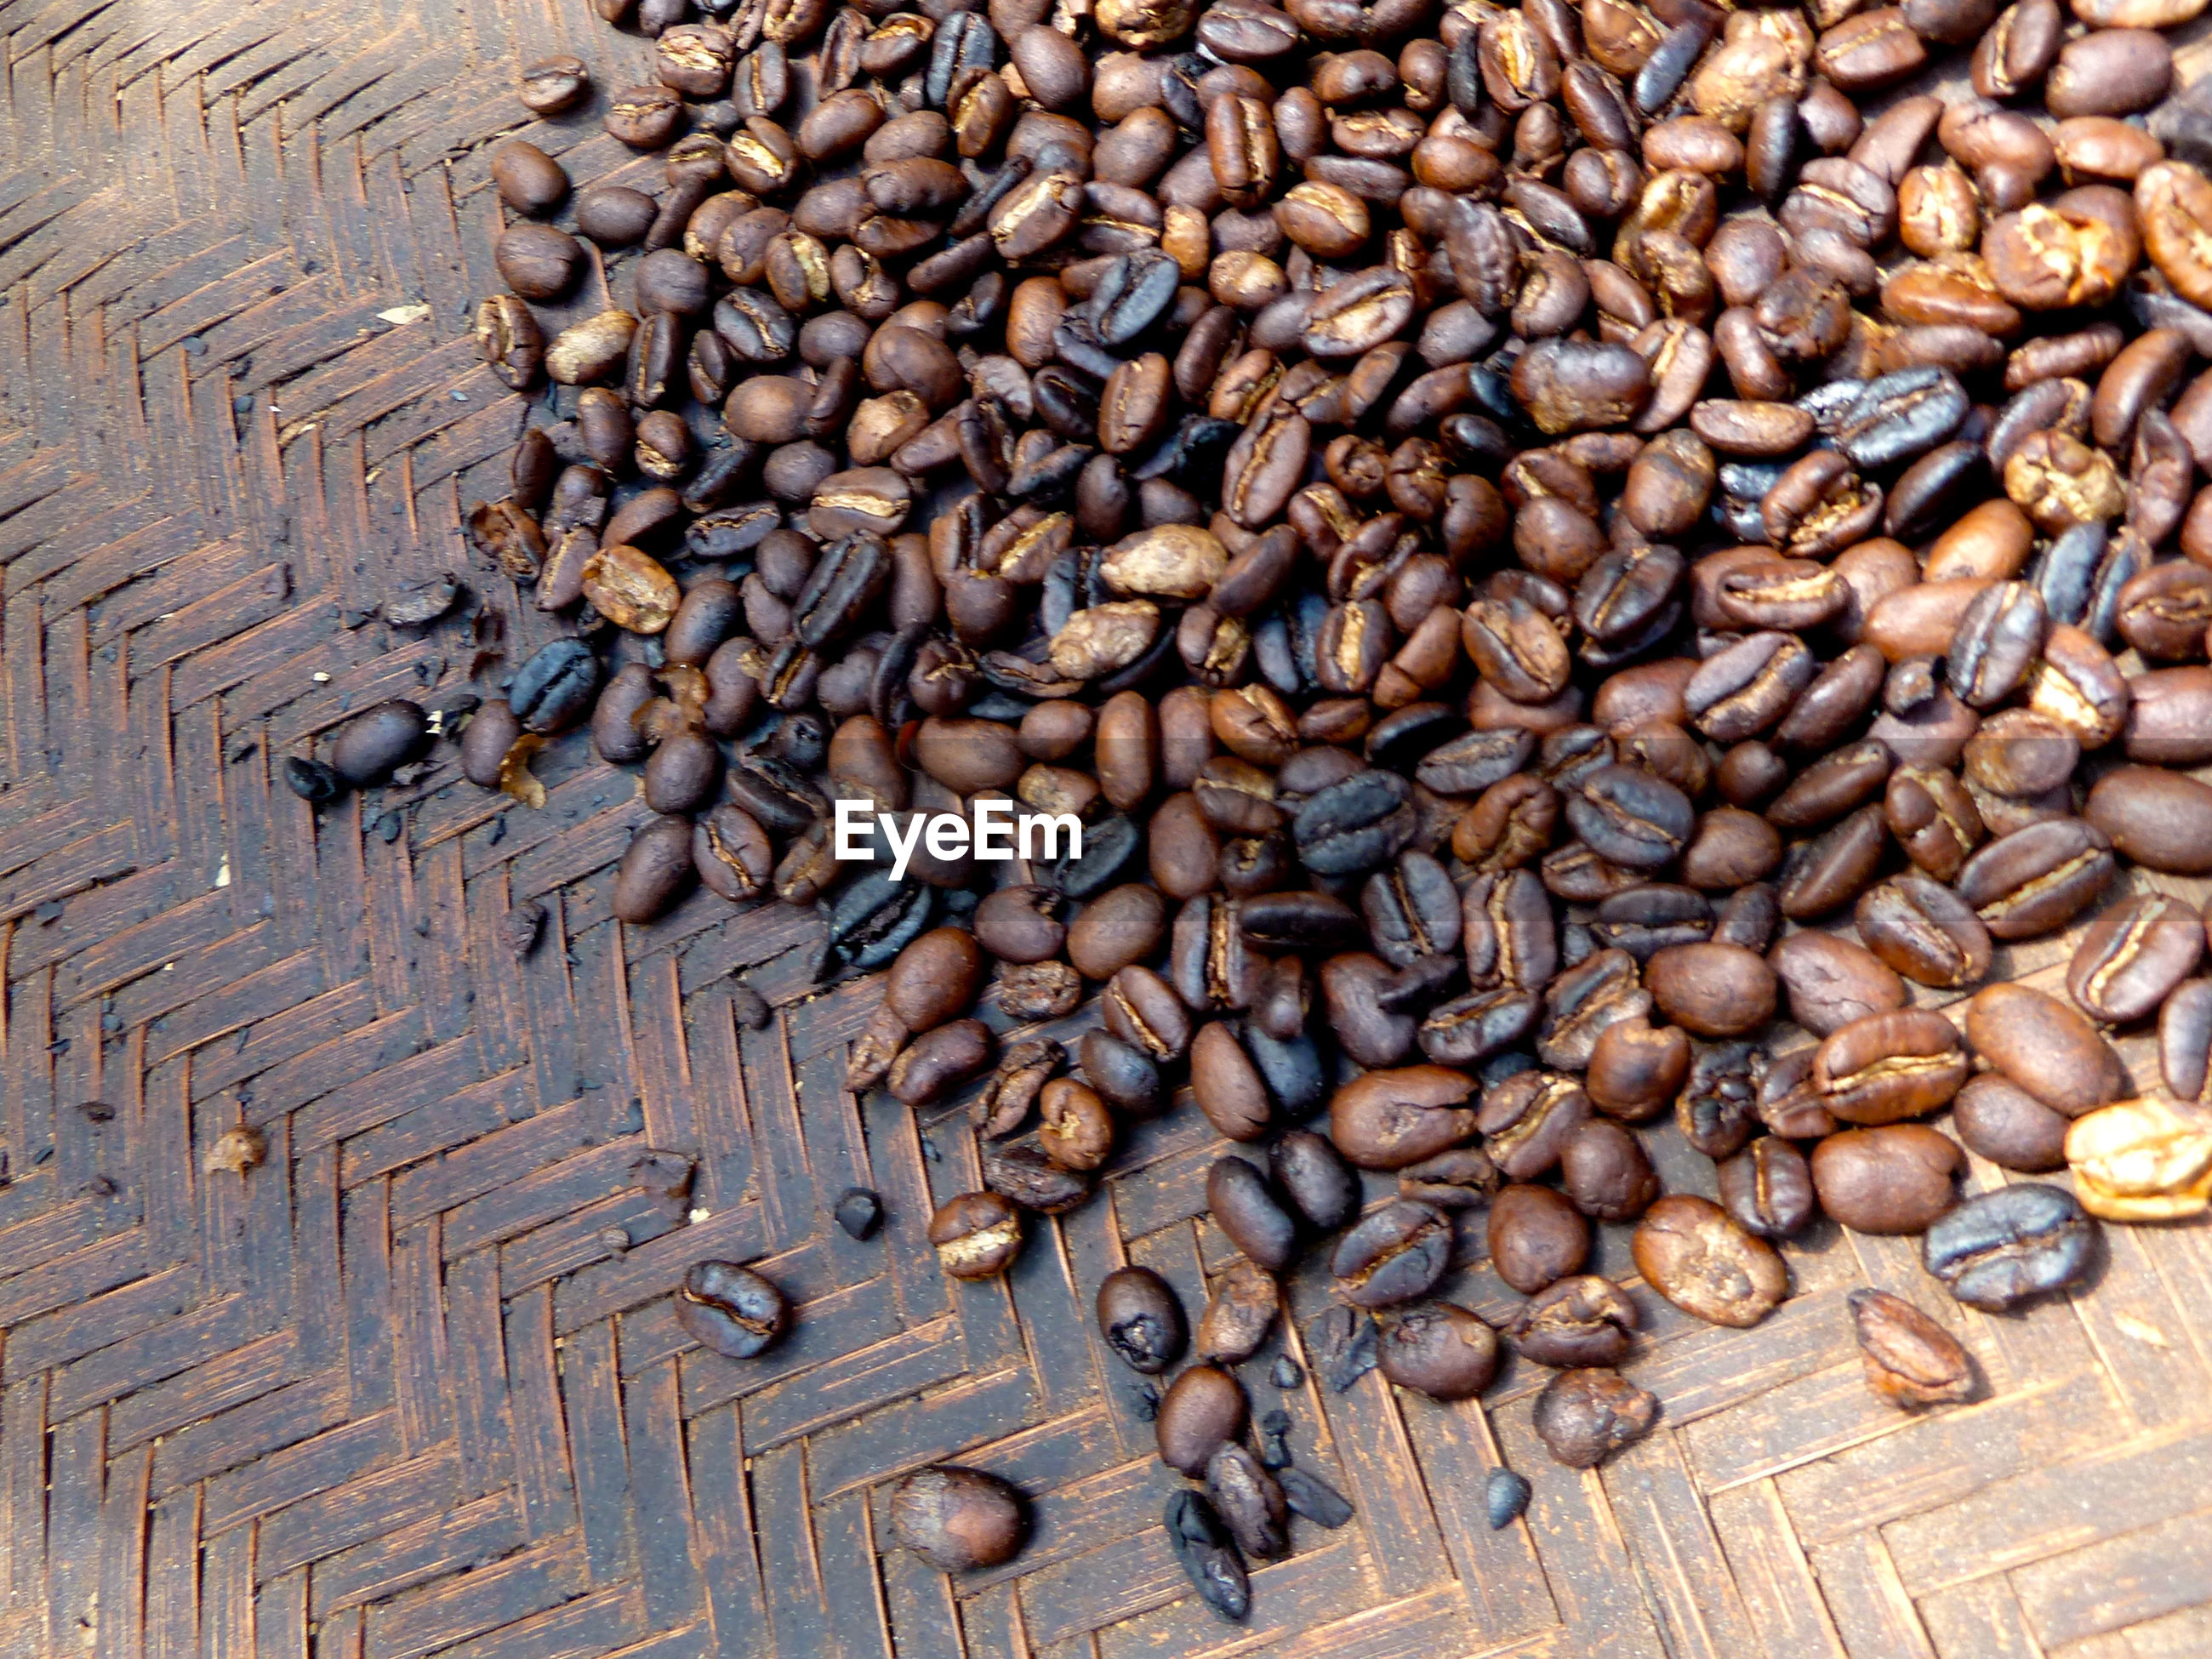 HIGH ANGLE VIEW OF COFFEE BEANS IN BACKGROUND